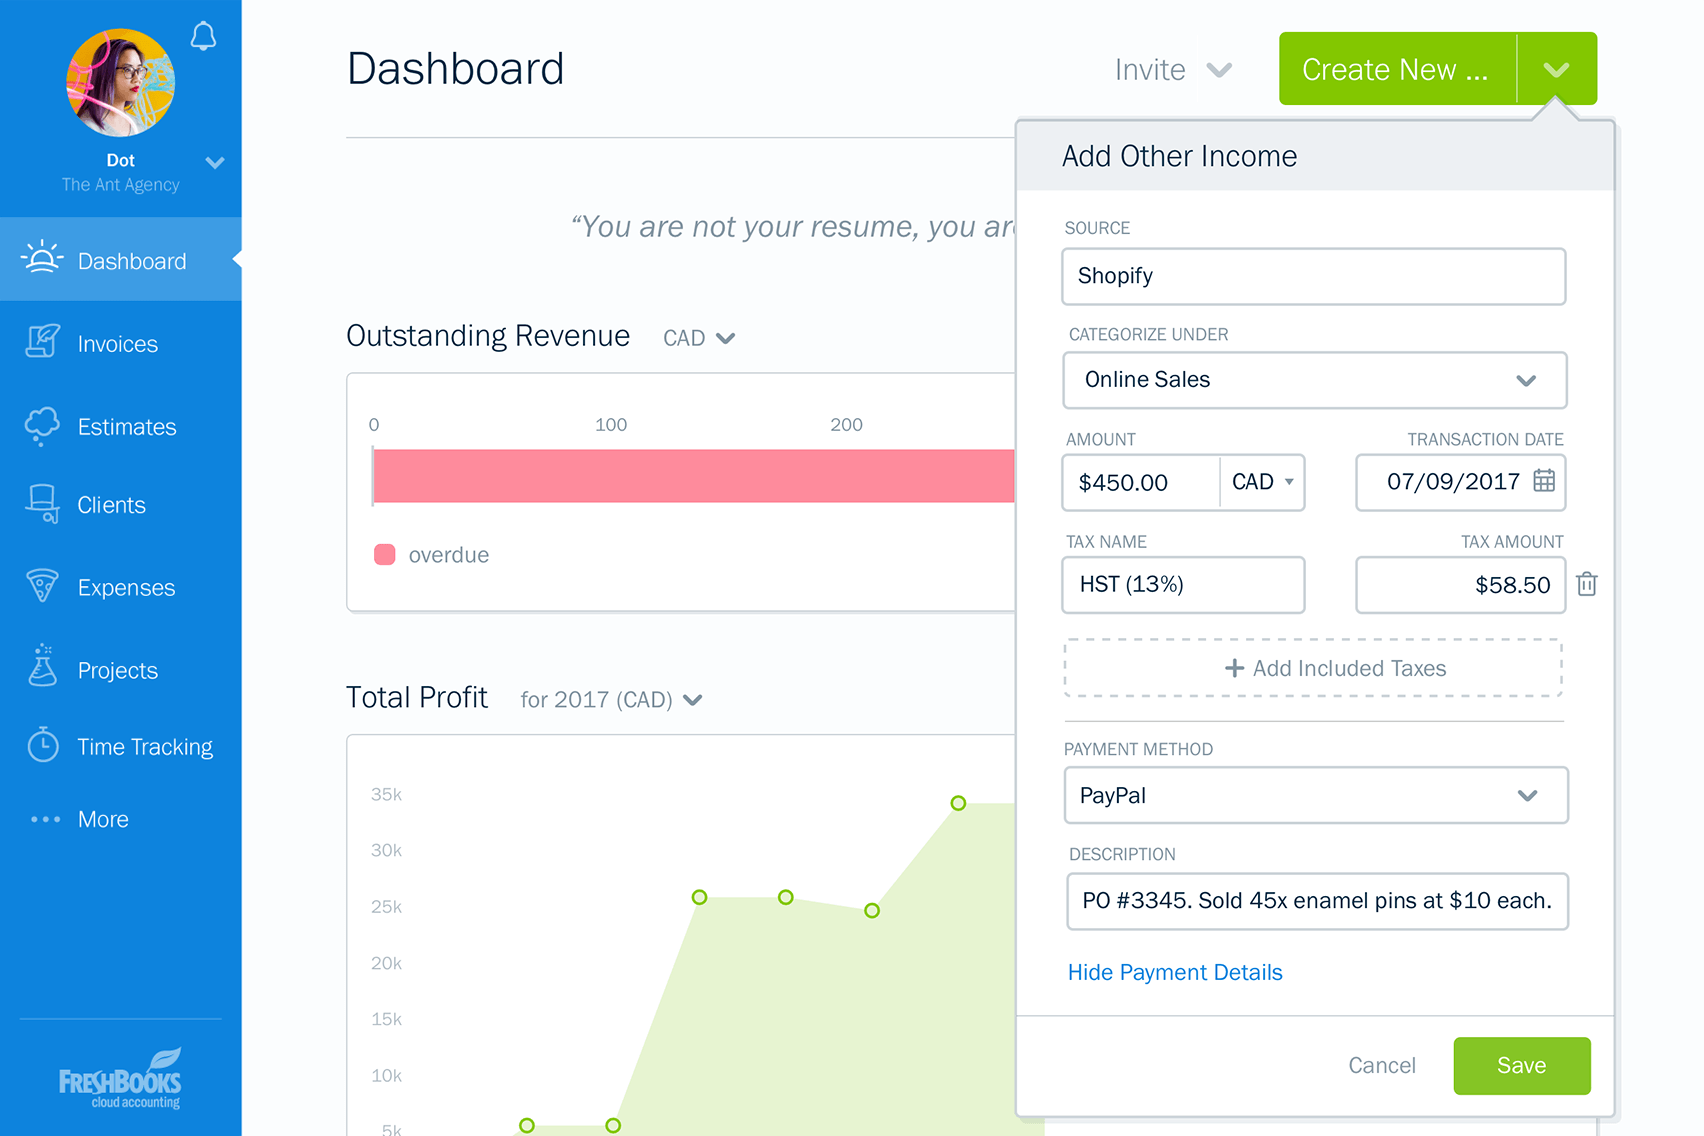 FreshBooks: adding other income